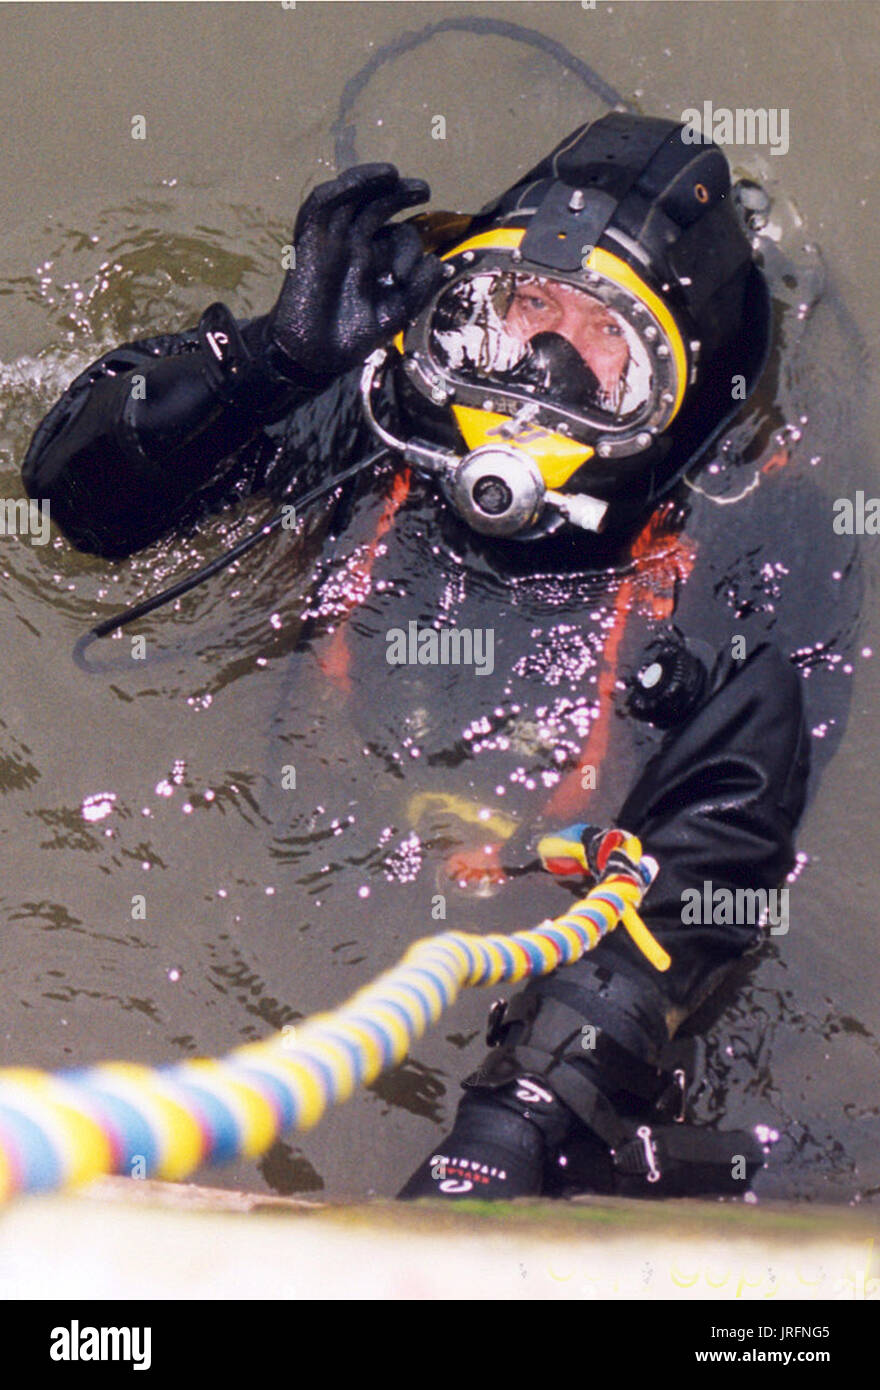 police marine dive team search and recovery - Stock Image